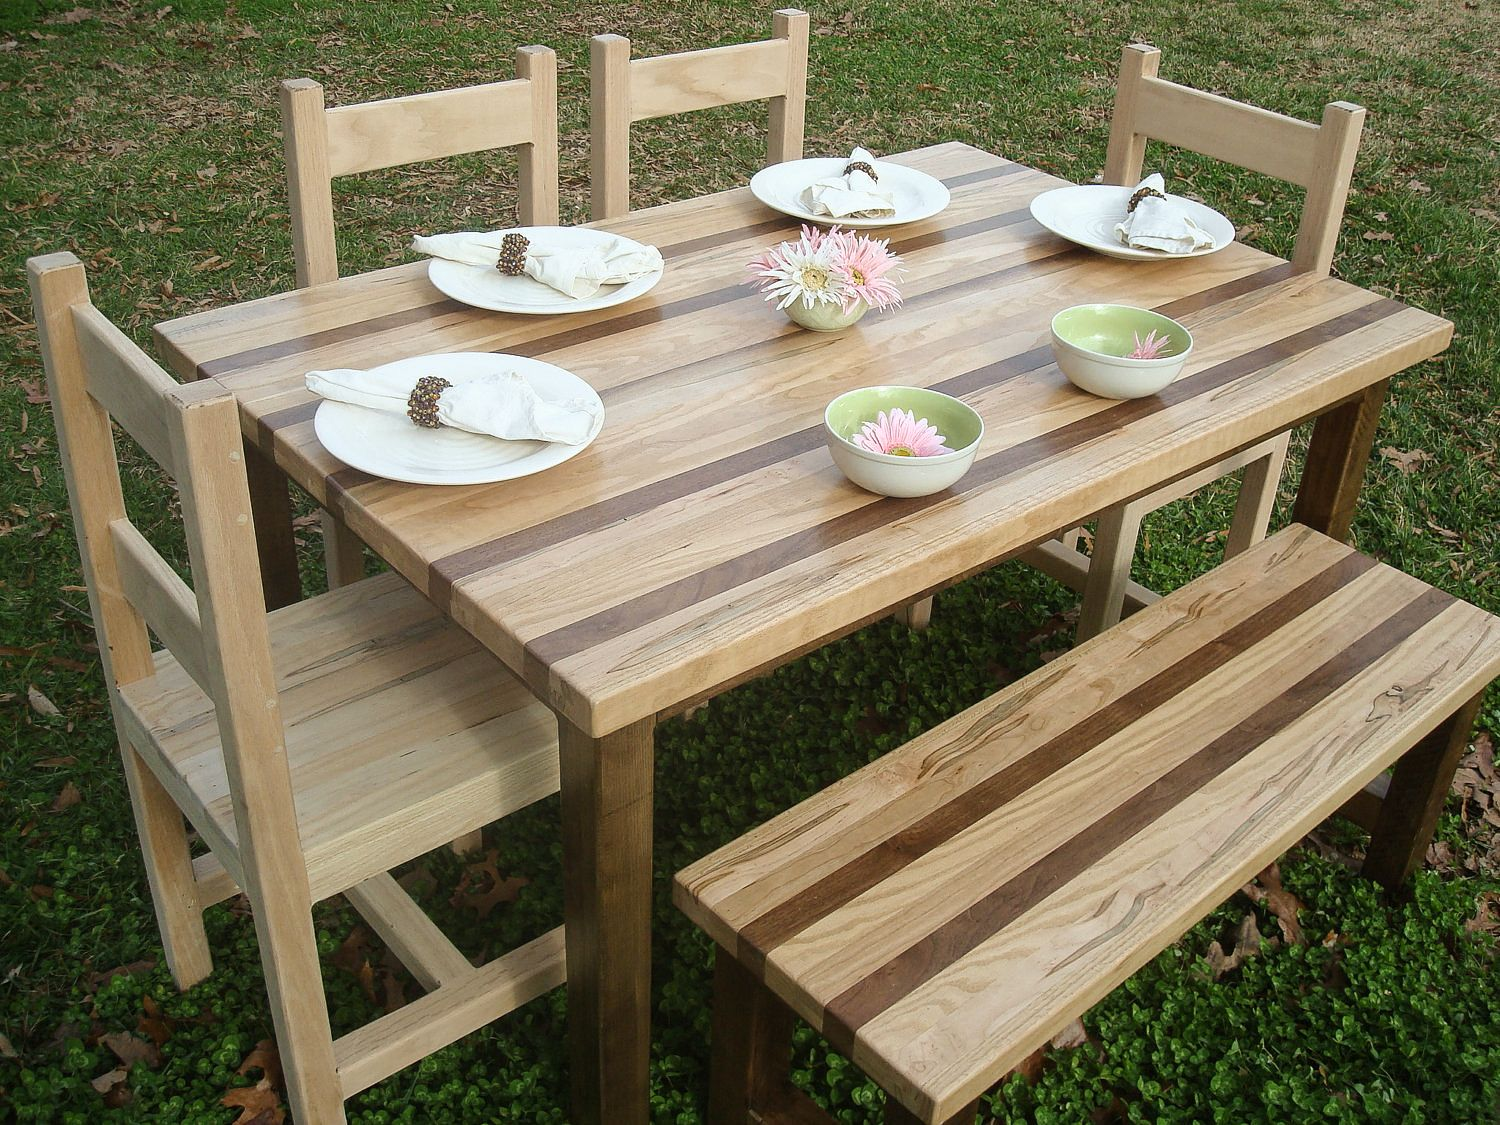 Buy A Custom Made Walnut Oak Wormy Maple And Cherry Butcherblock Dining Table Made To Order